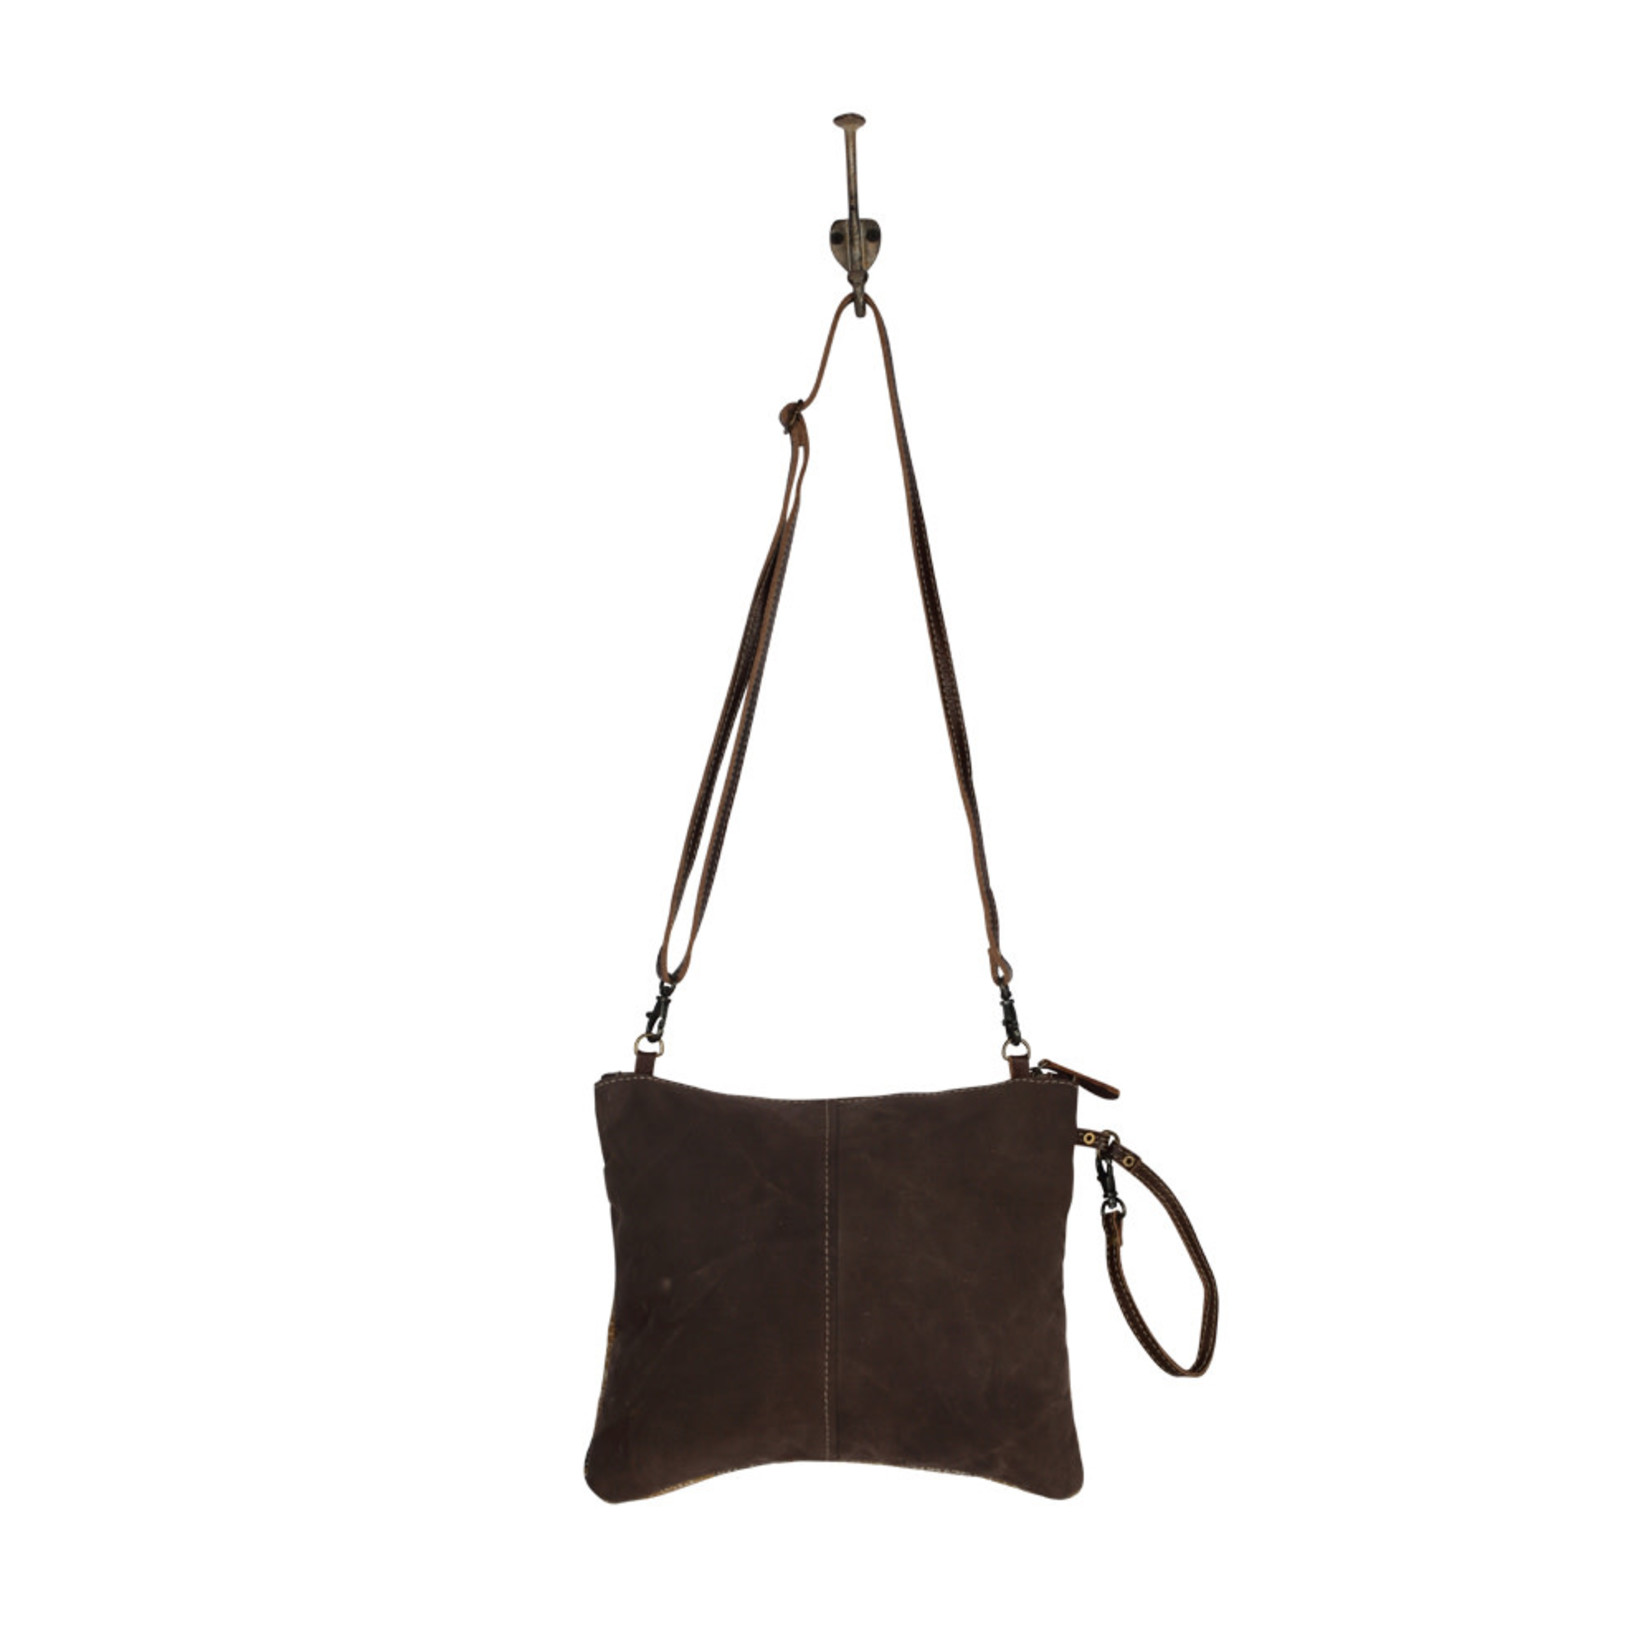 Myra Bags S-2068 Sprightly Small & Crossbody Bag